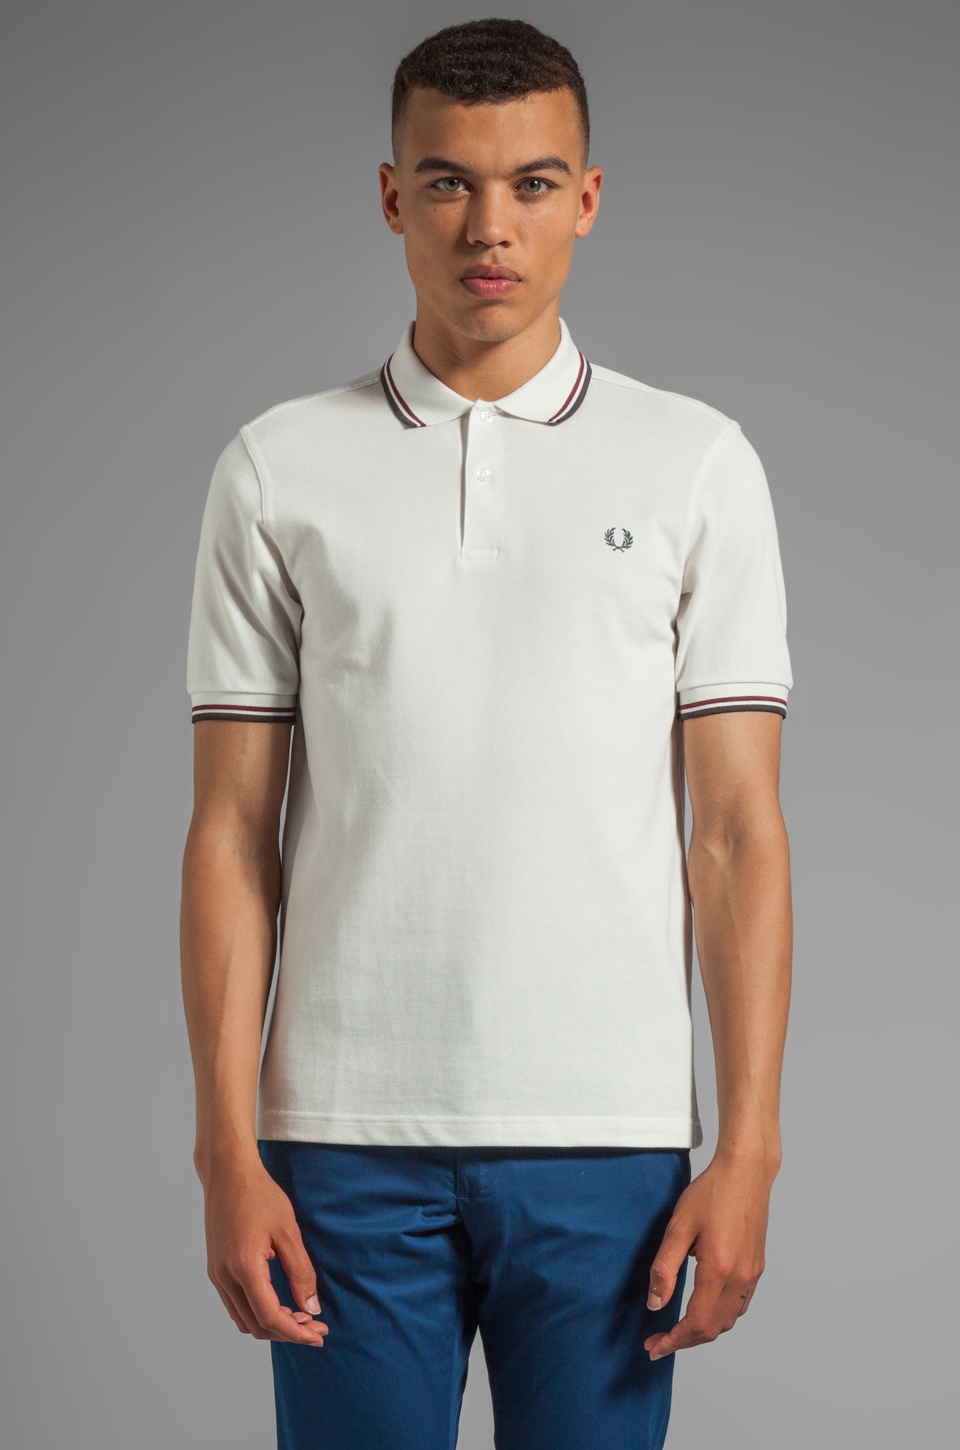 Fred Perry Twin Tipped Shirt in Light Ecru/Port/Graphite Marl